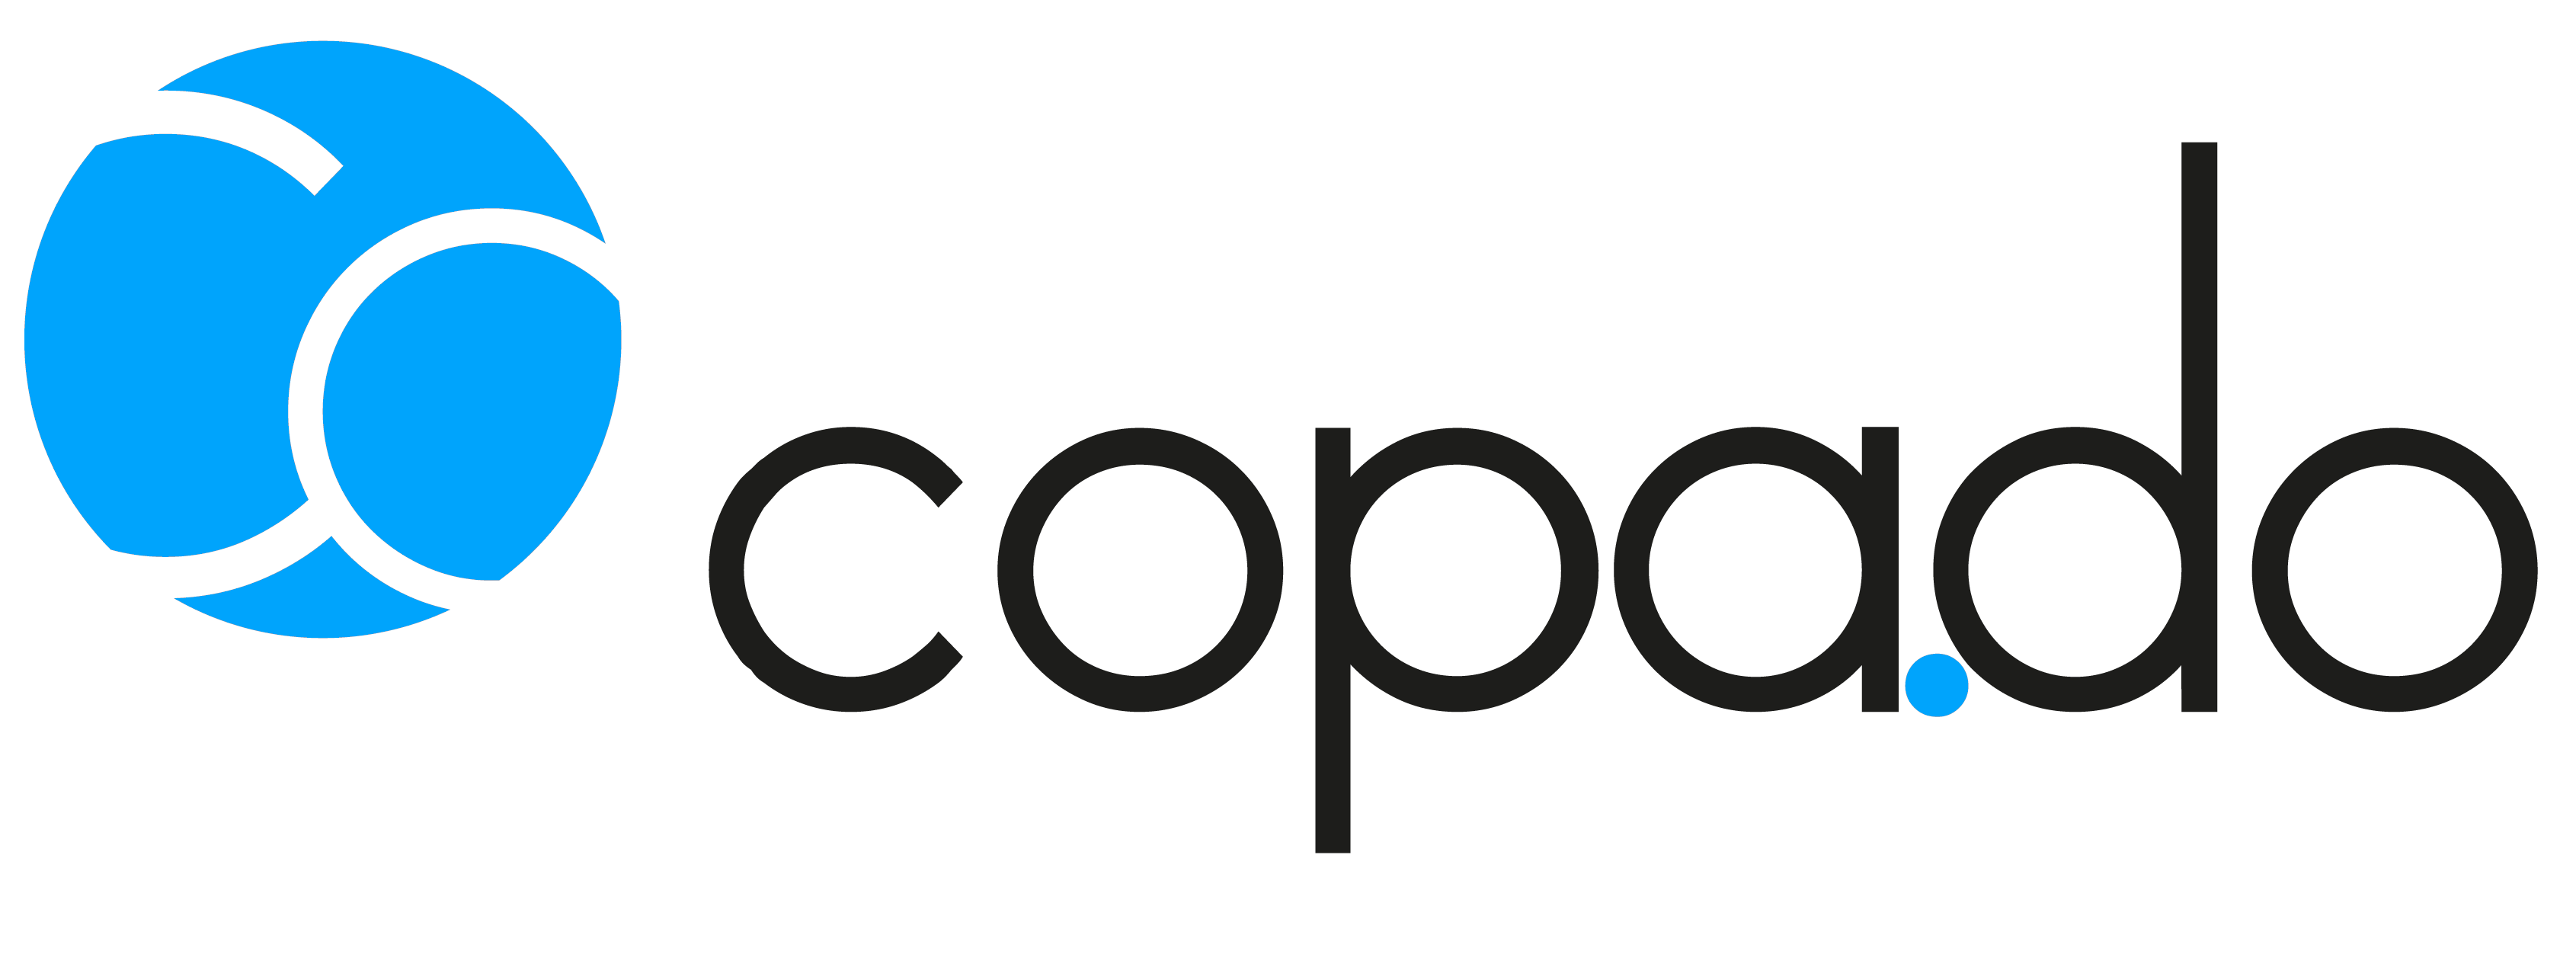 Copado Logo Transparency